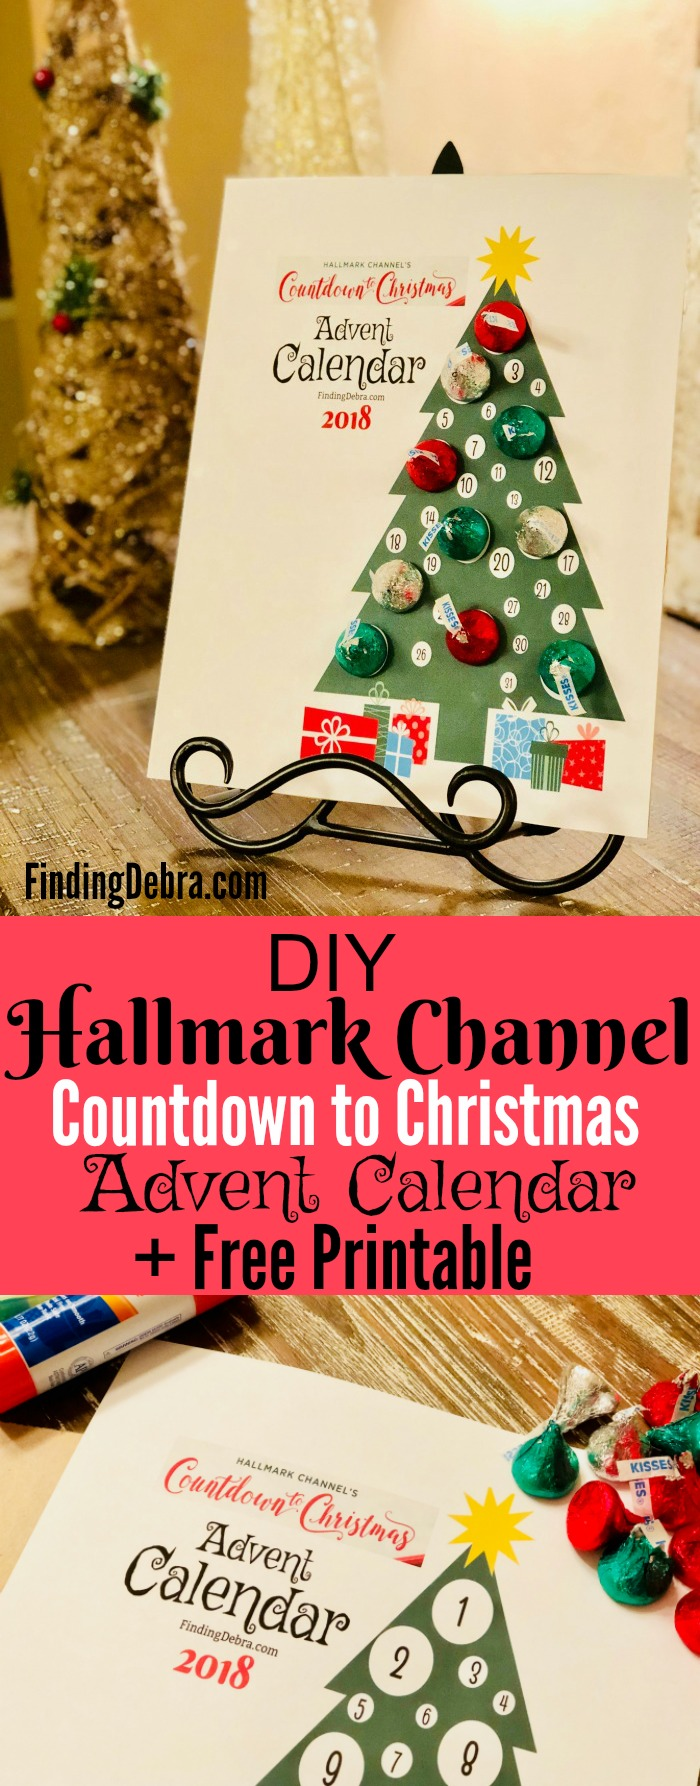 Hallmark Channel Countdown To Christmas Advent Calendar and Free Printable